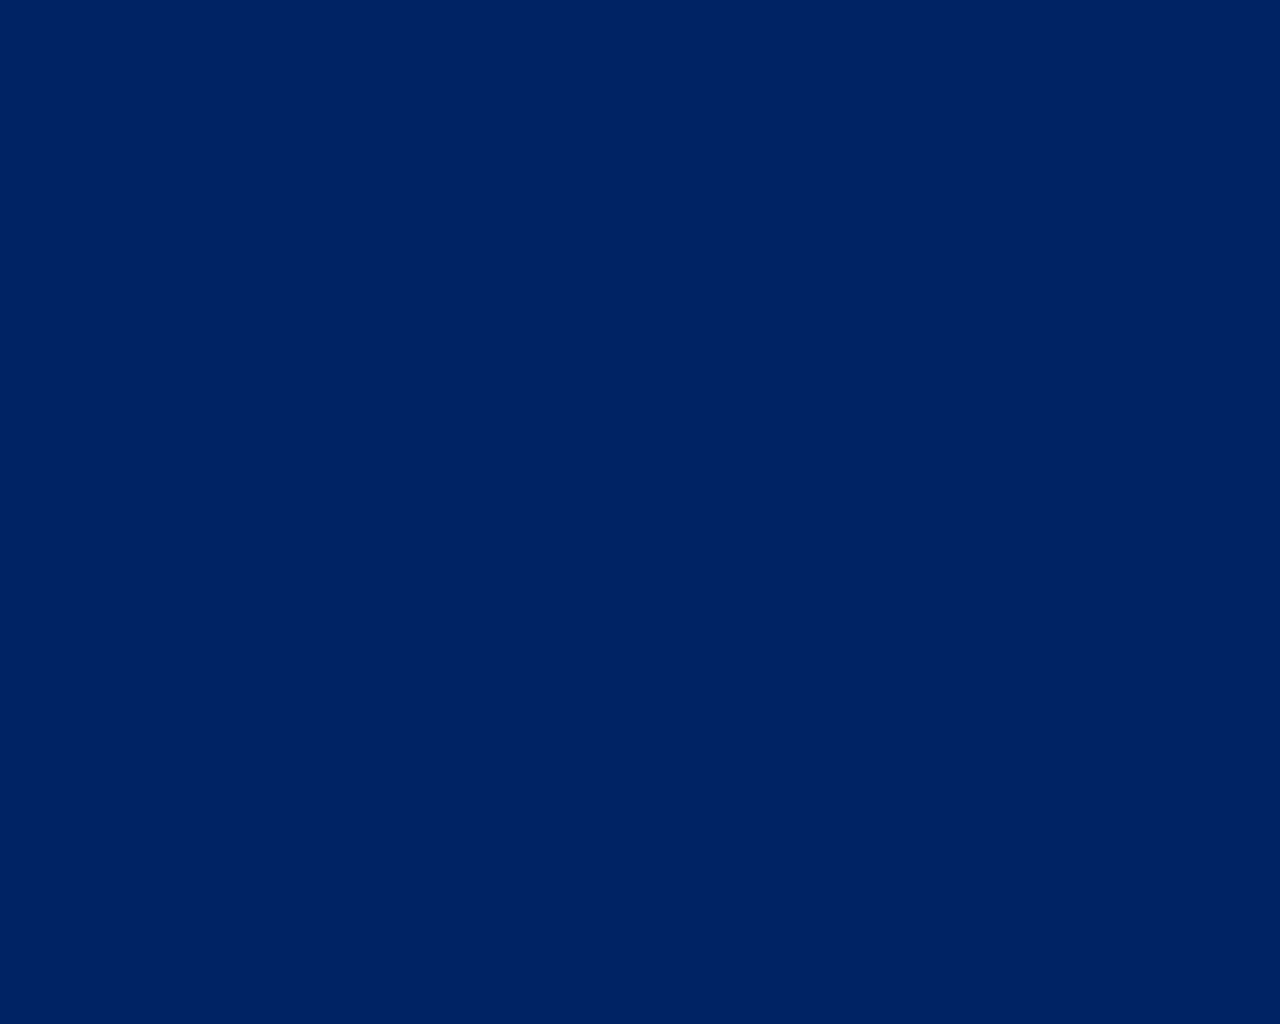 1280x1024 Royal Blue Traditional Solid Color Background